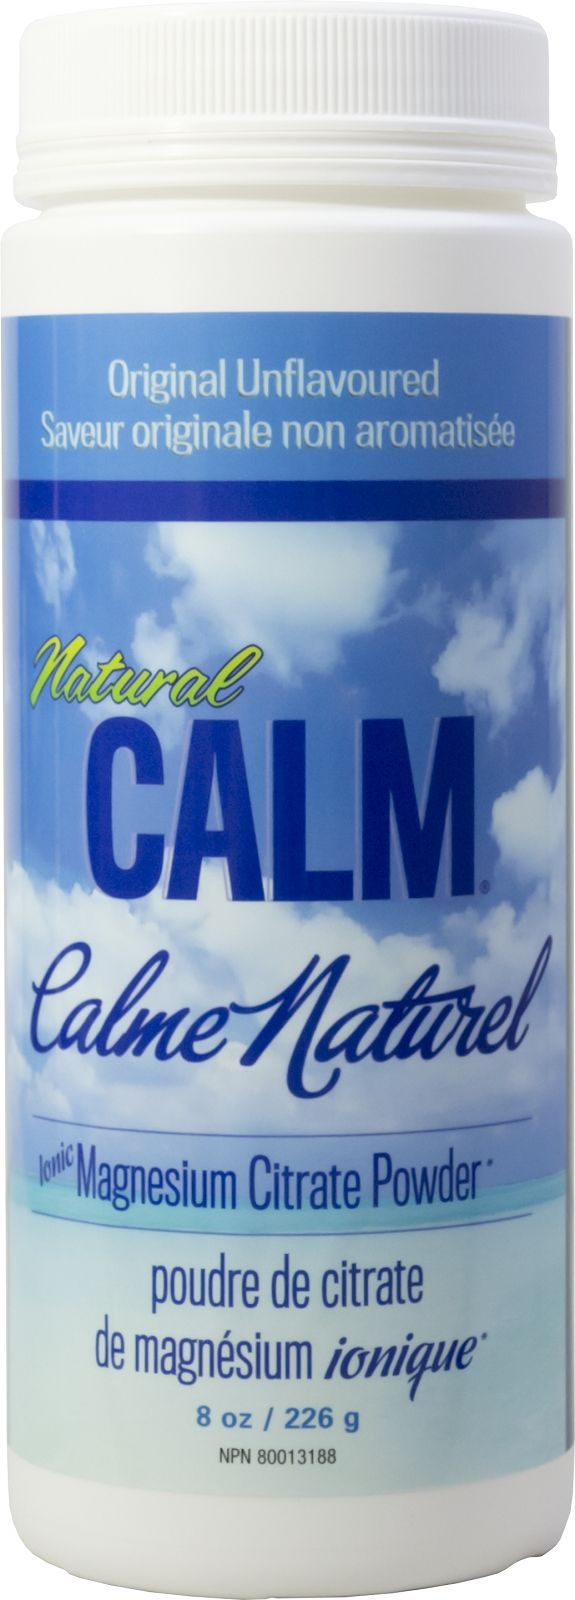 Supplements & Vitamins - Natural Calm - Natural Calm Original, 226g